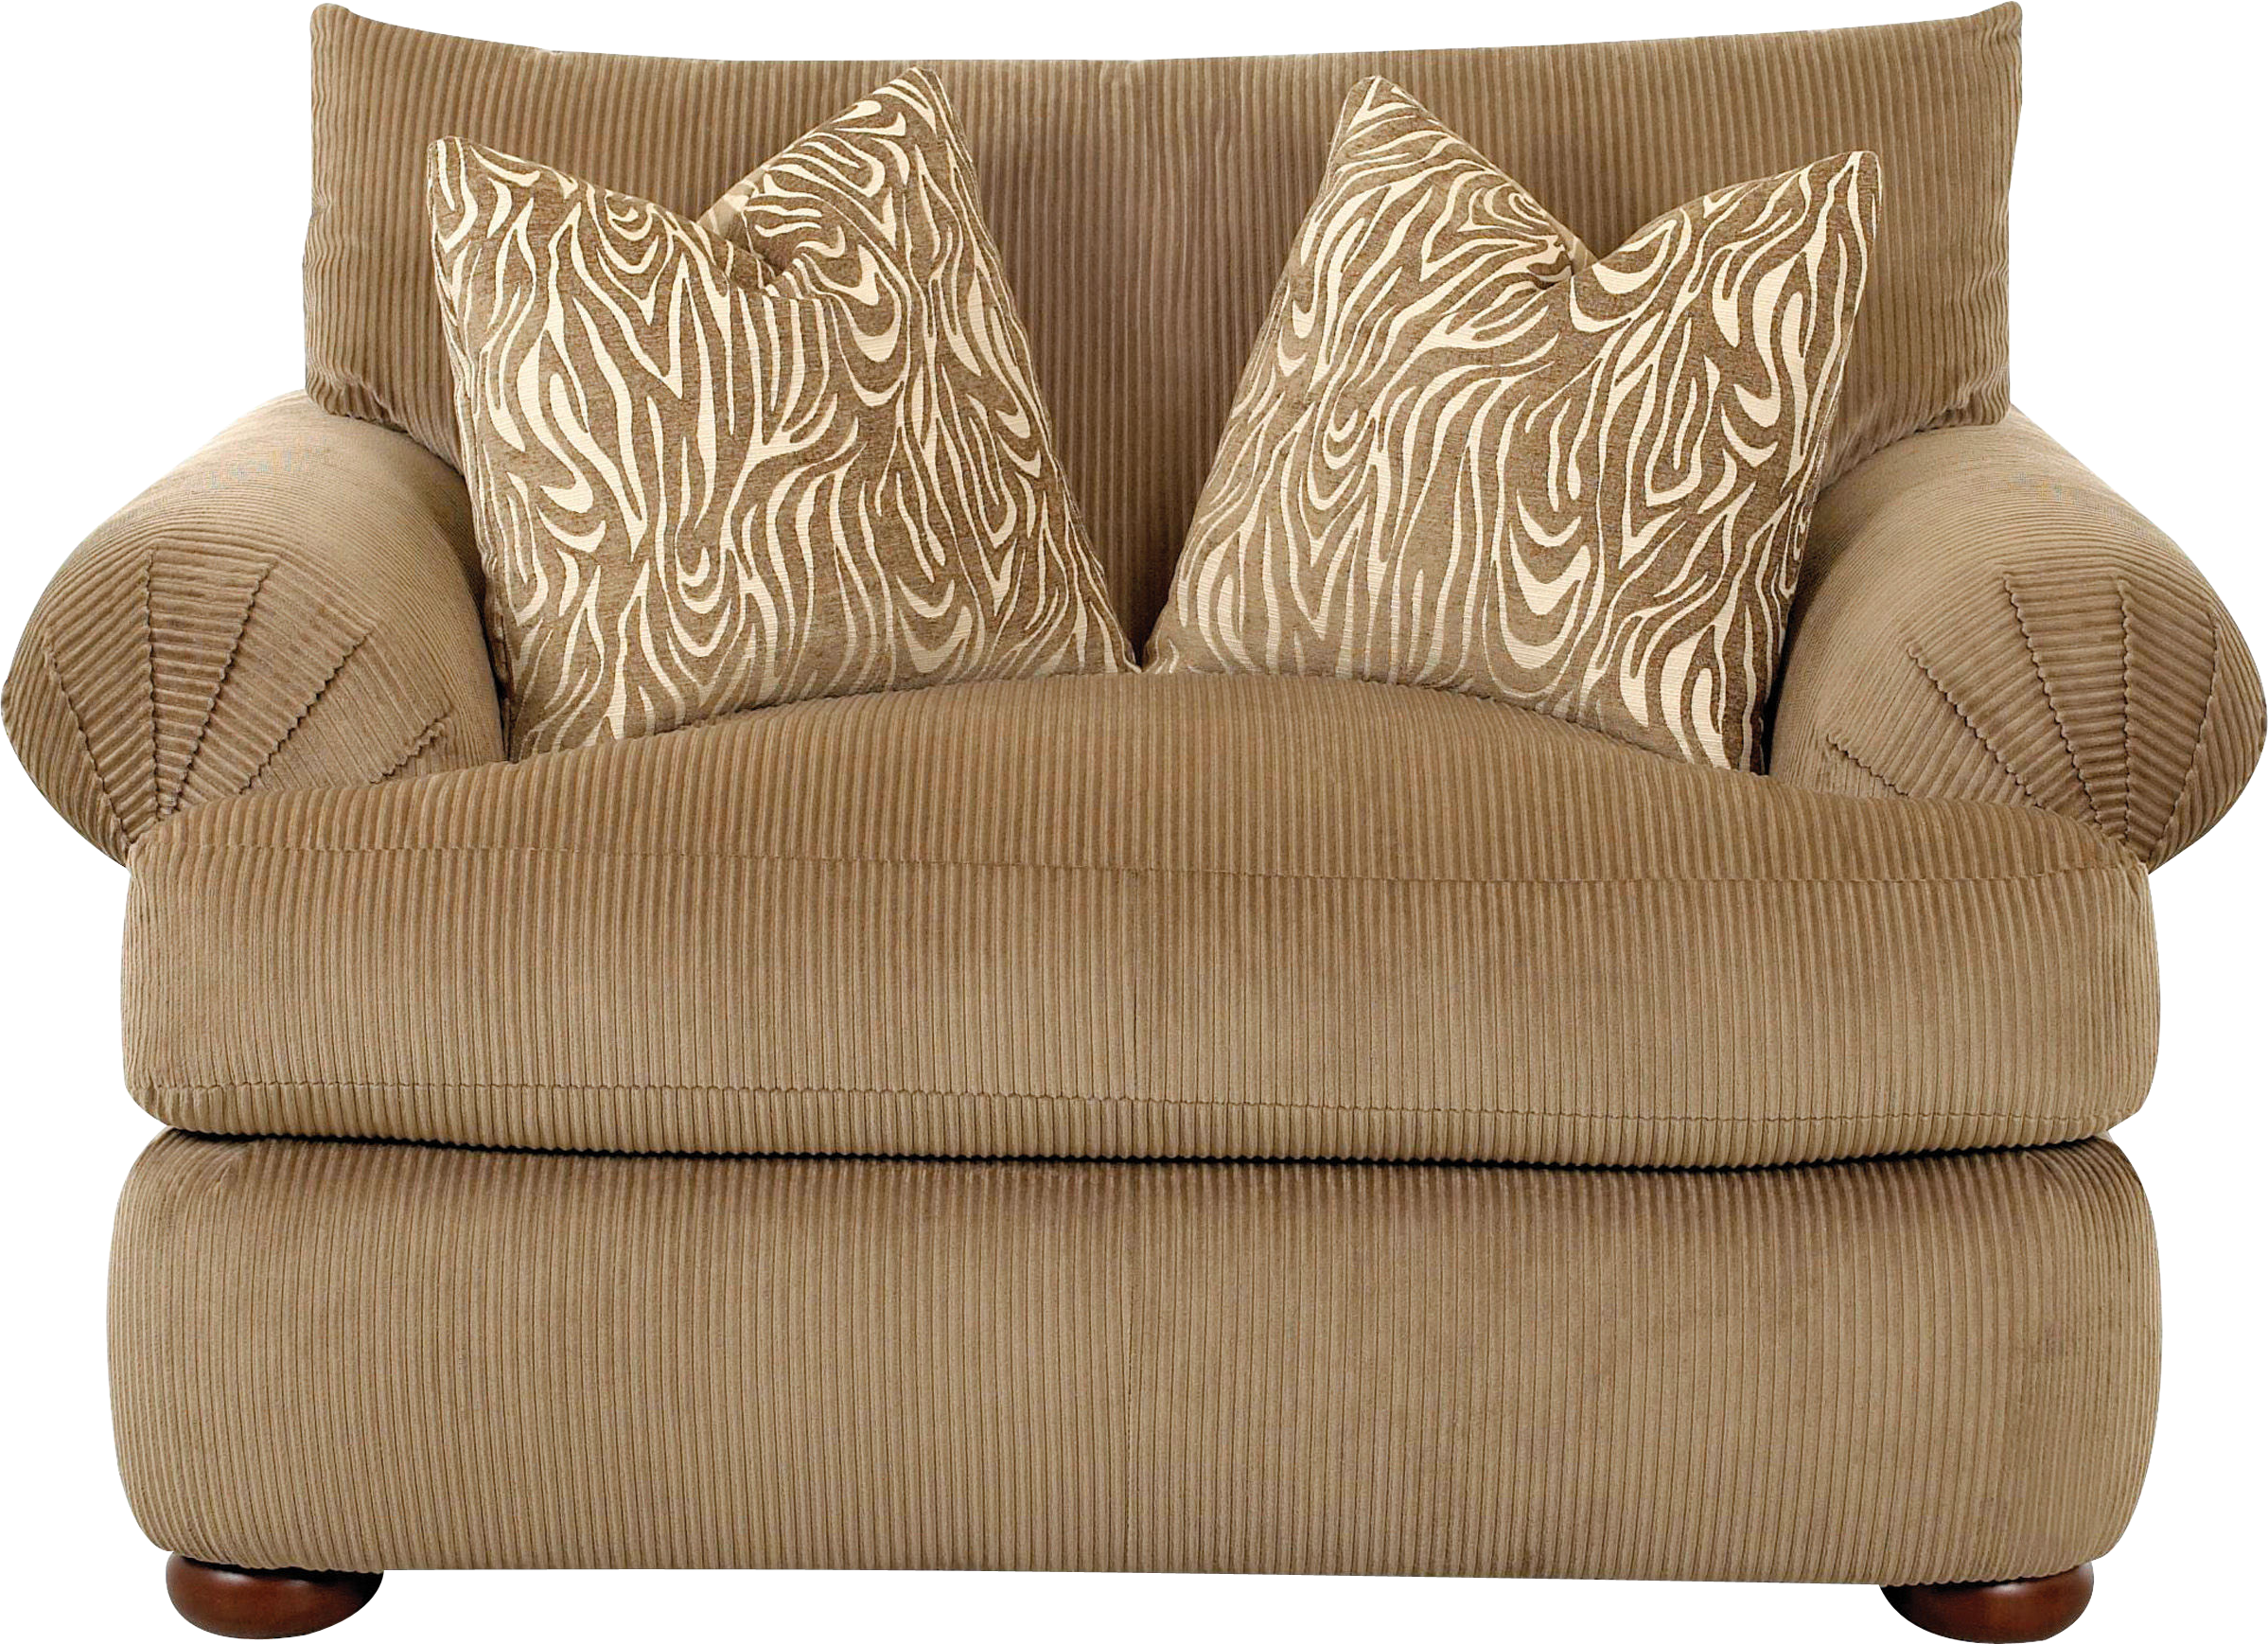 Couch Safa Transparent Png Clipart Free Download Ya Webdesign